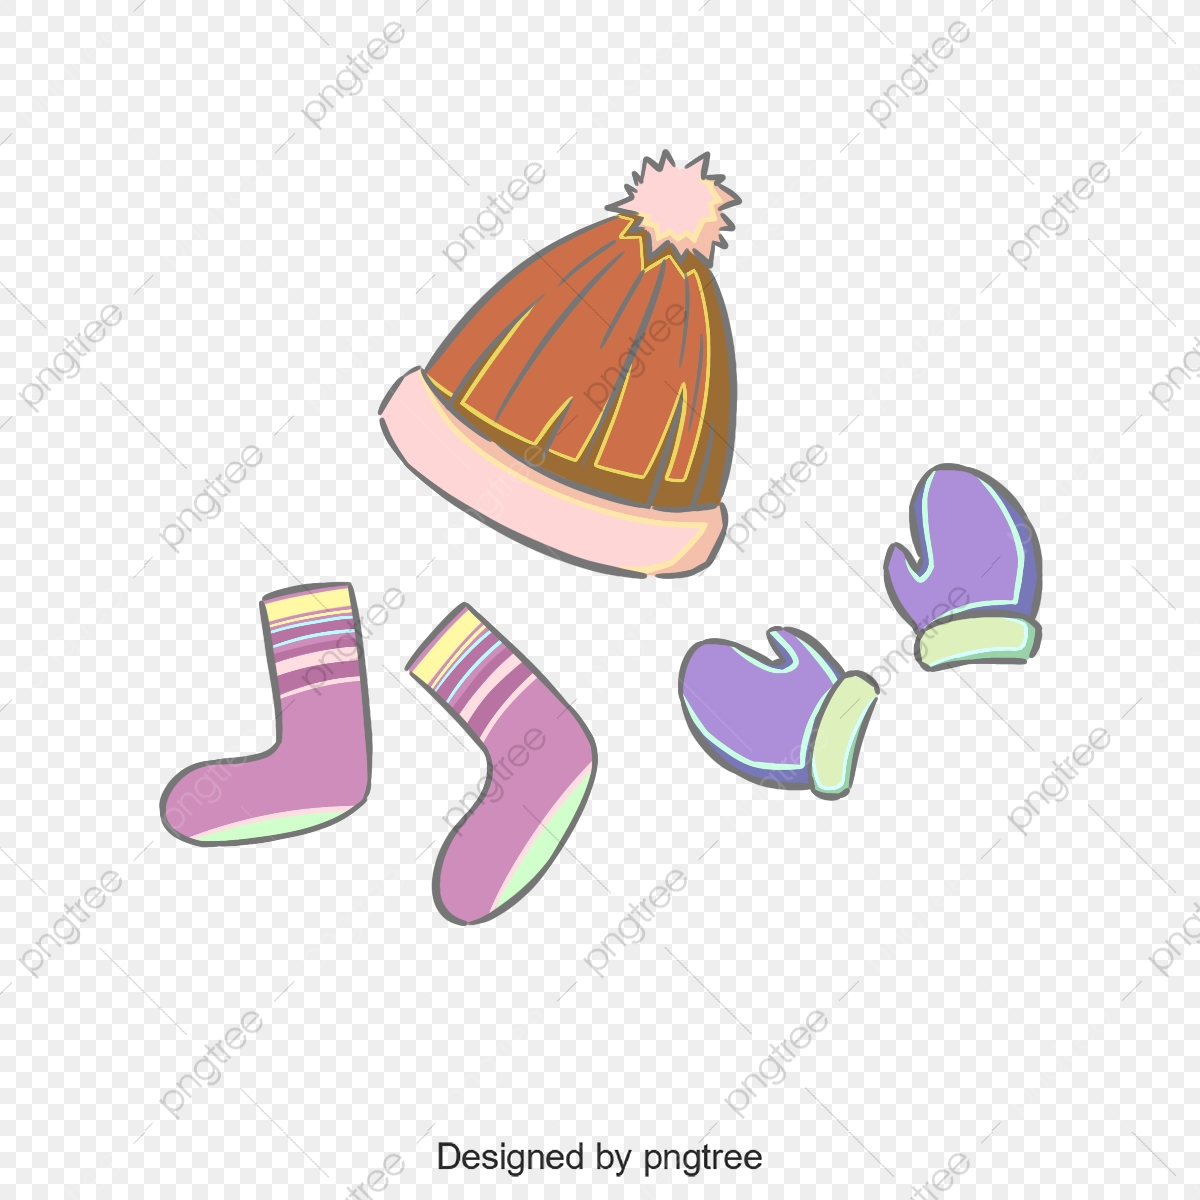 Sock clipart cute sock. Hand painted illustrations of